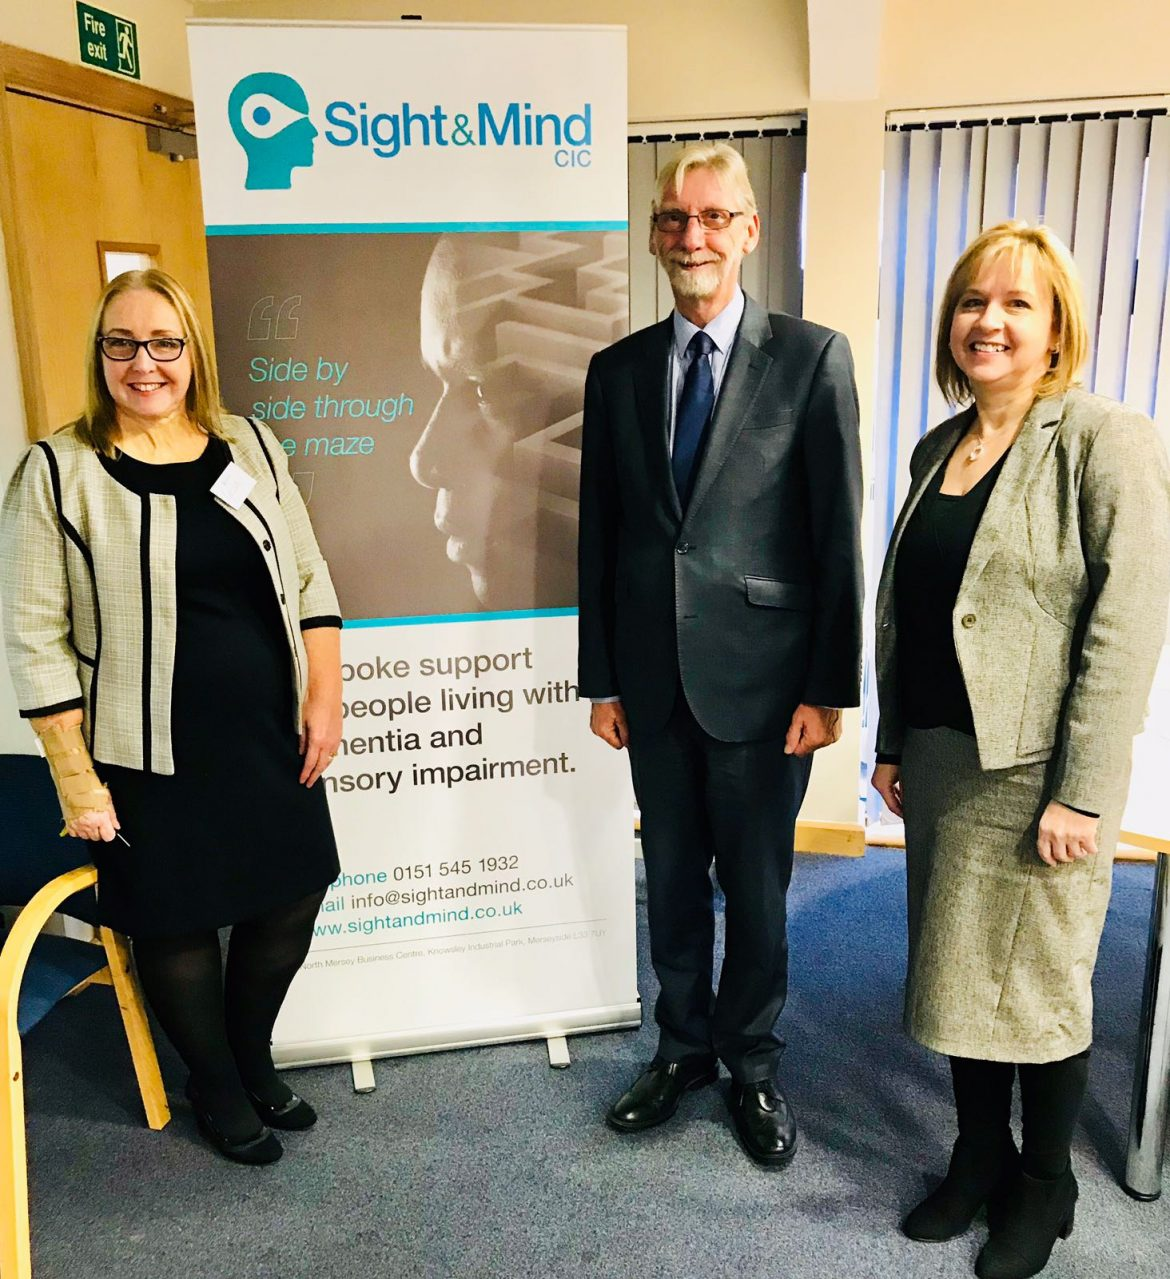 Cecilia Toole (left) at the Launch of Sight and Mind. Pictured with Sir George Howarth MP and Julie Moss, KMBC